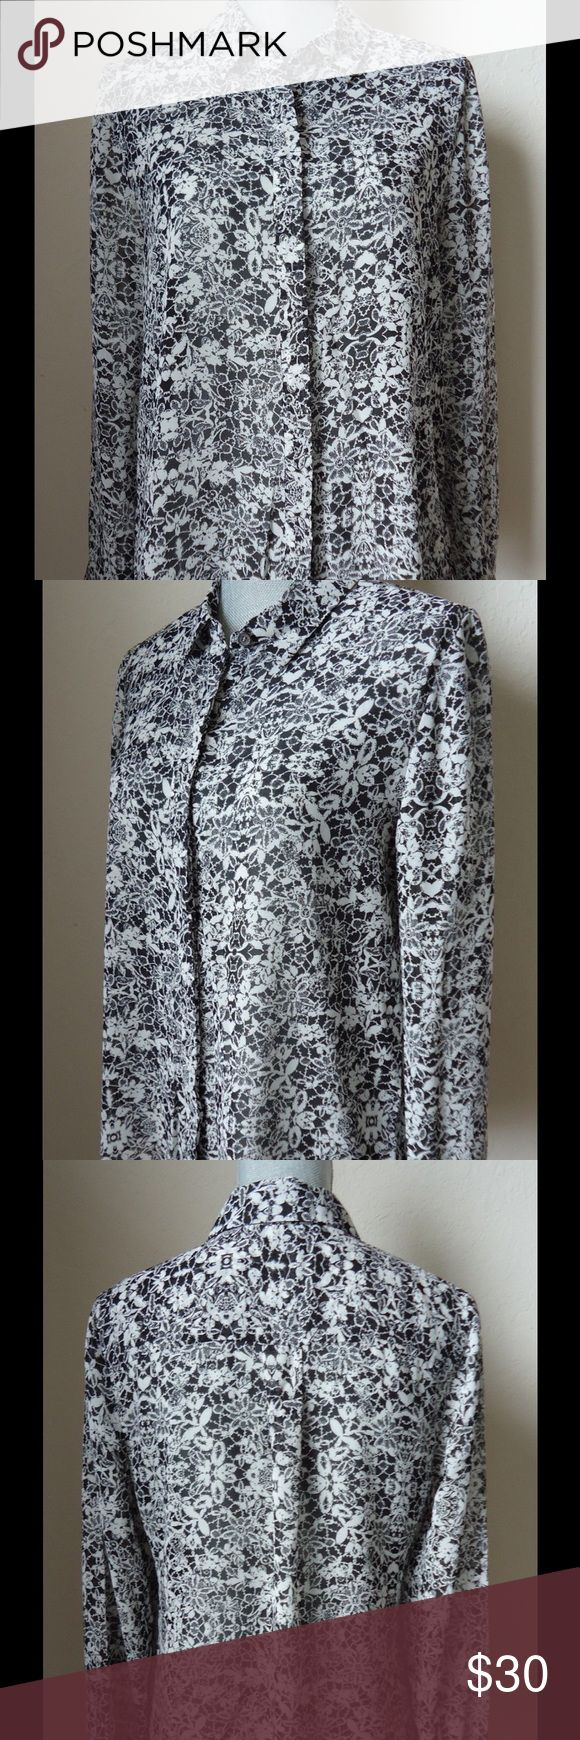 Vince Camuto Black and White Floral Blouse Long sleeve Blouse, semi sheer. Black and white floral pattern. In excellent used condition. 100% polyester. Measures approximately 18 inches from arm pit to arm pit.  Measures approximately 27 inches from shoulder to hem. Vince Camuto Tops Blouses